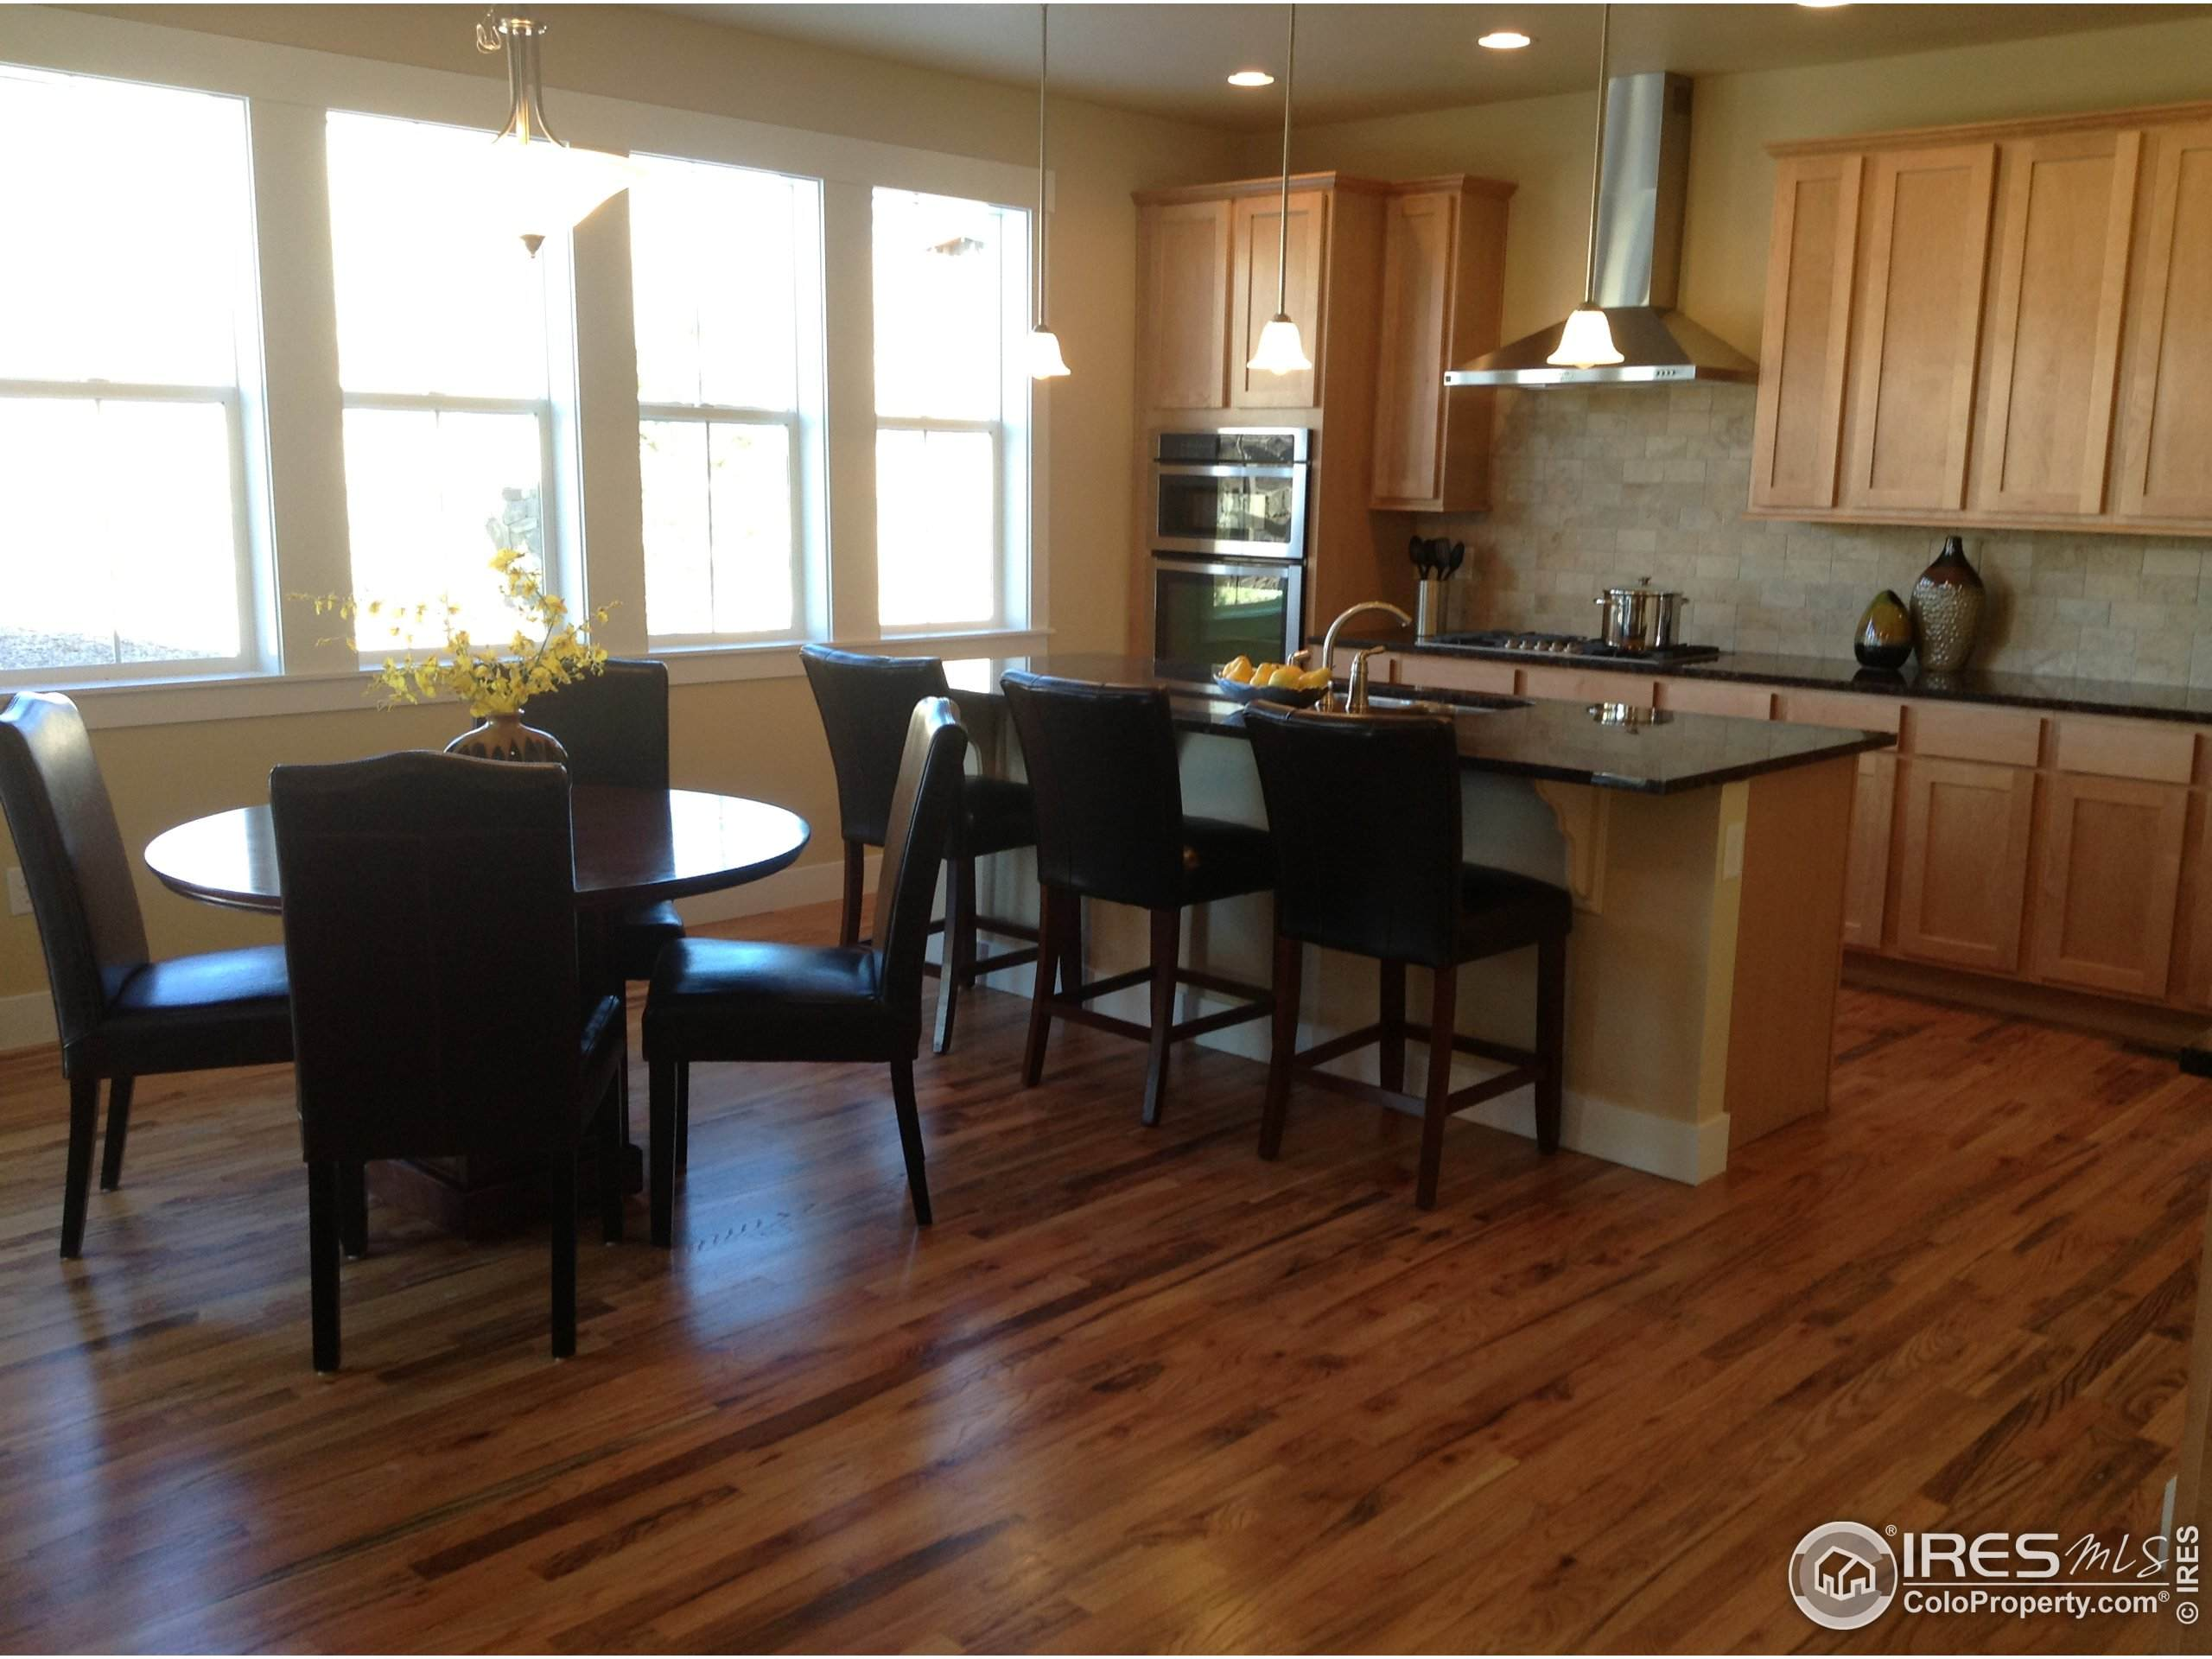 205 N 45th Ave Ct, Greeley, CO 80634 (#934171) :: Hudson Stonegate Team